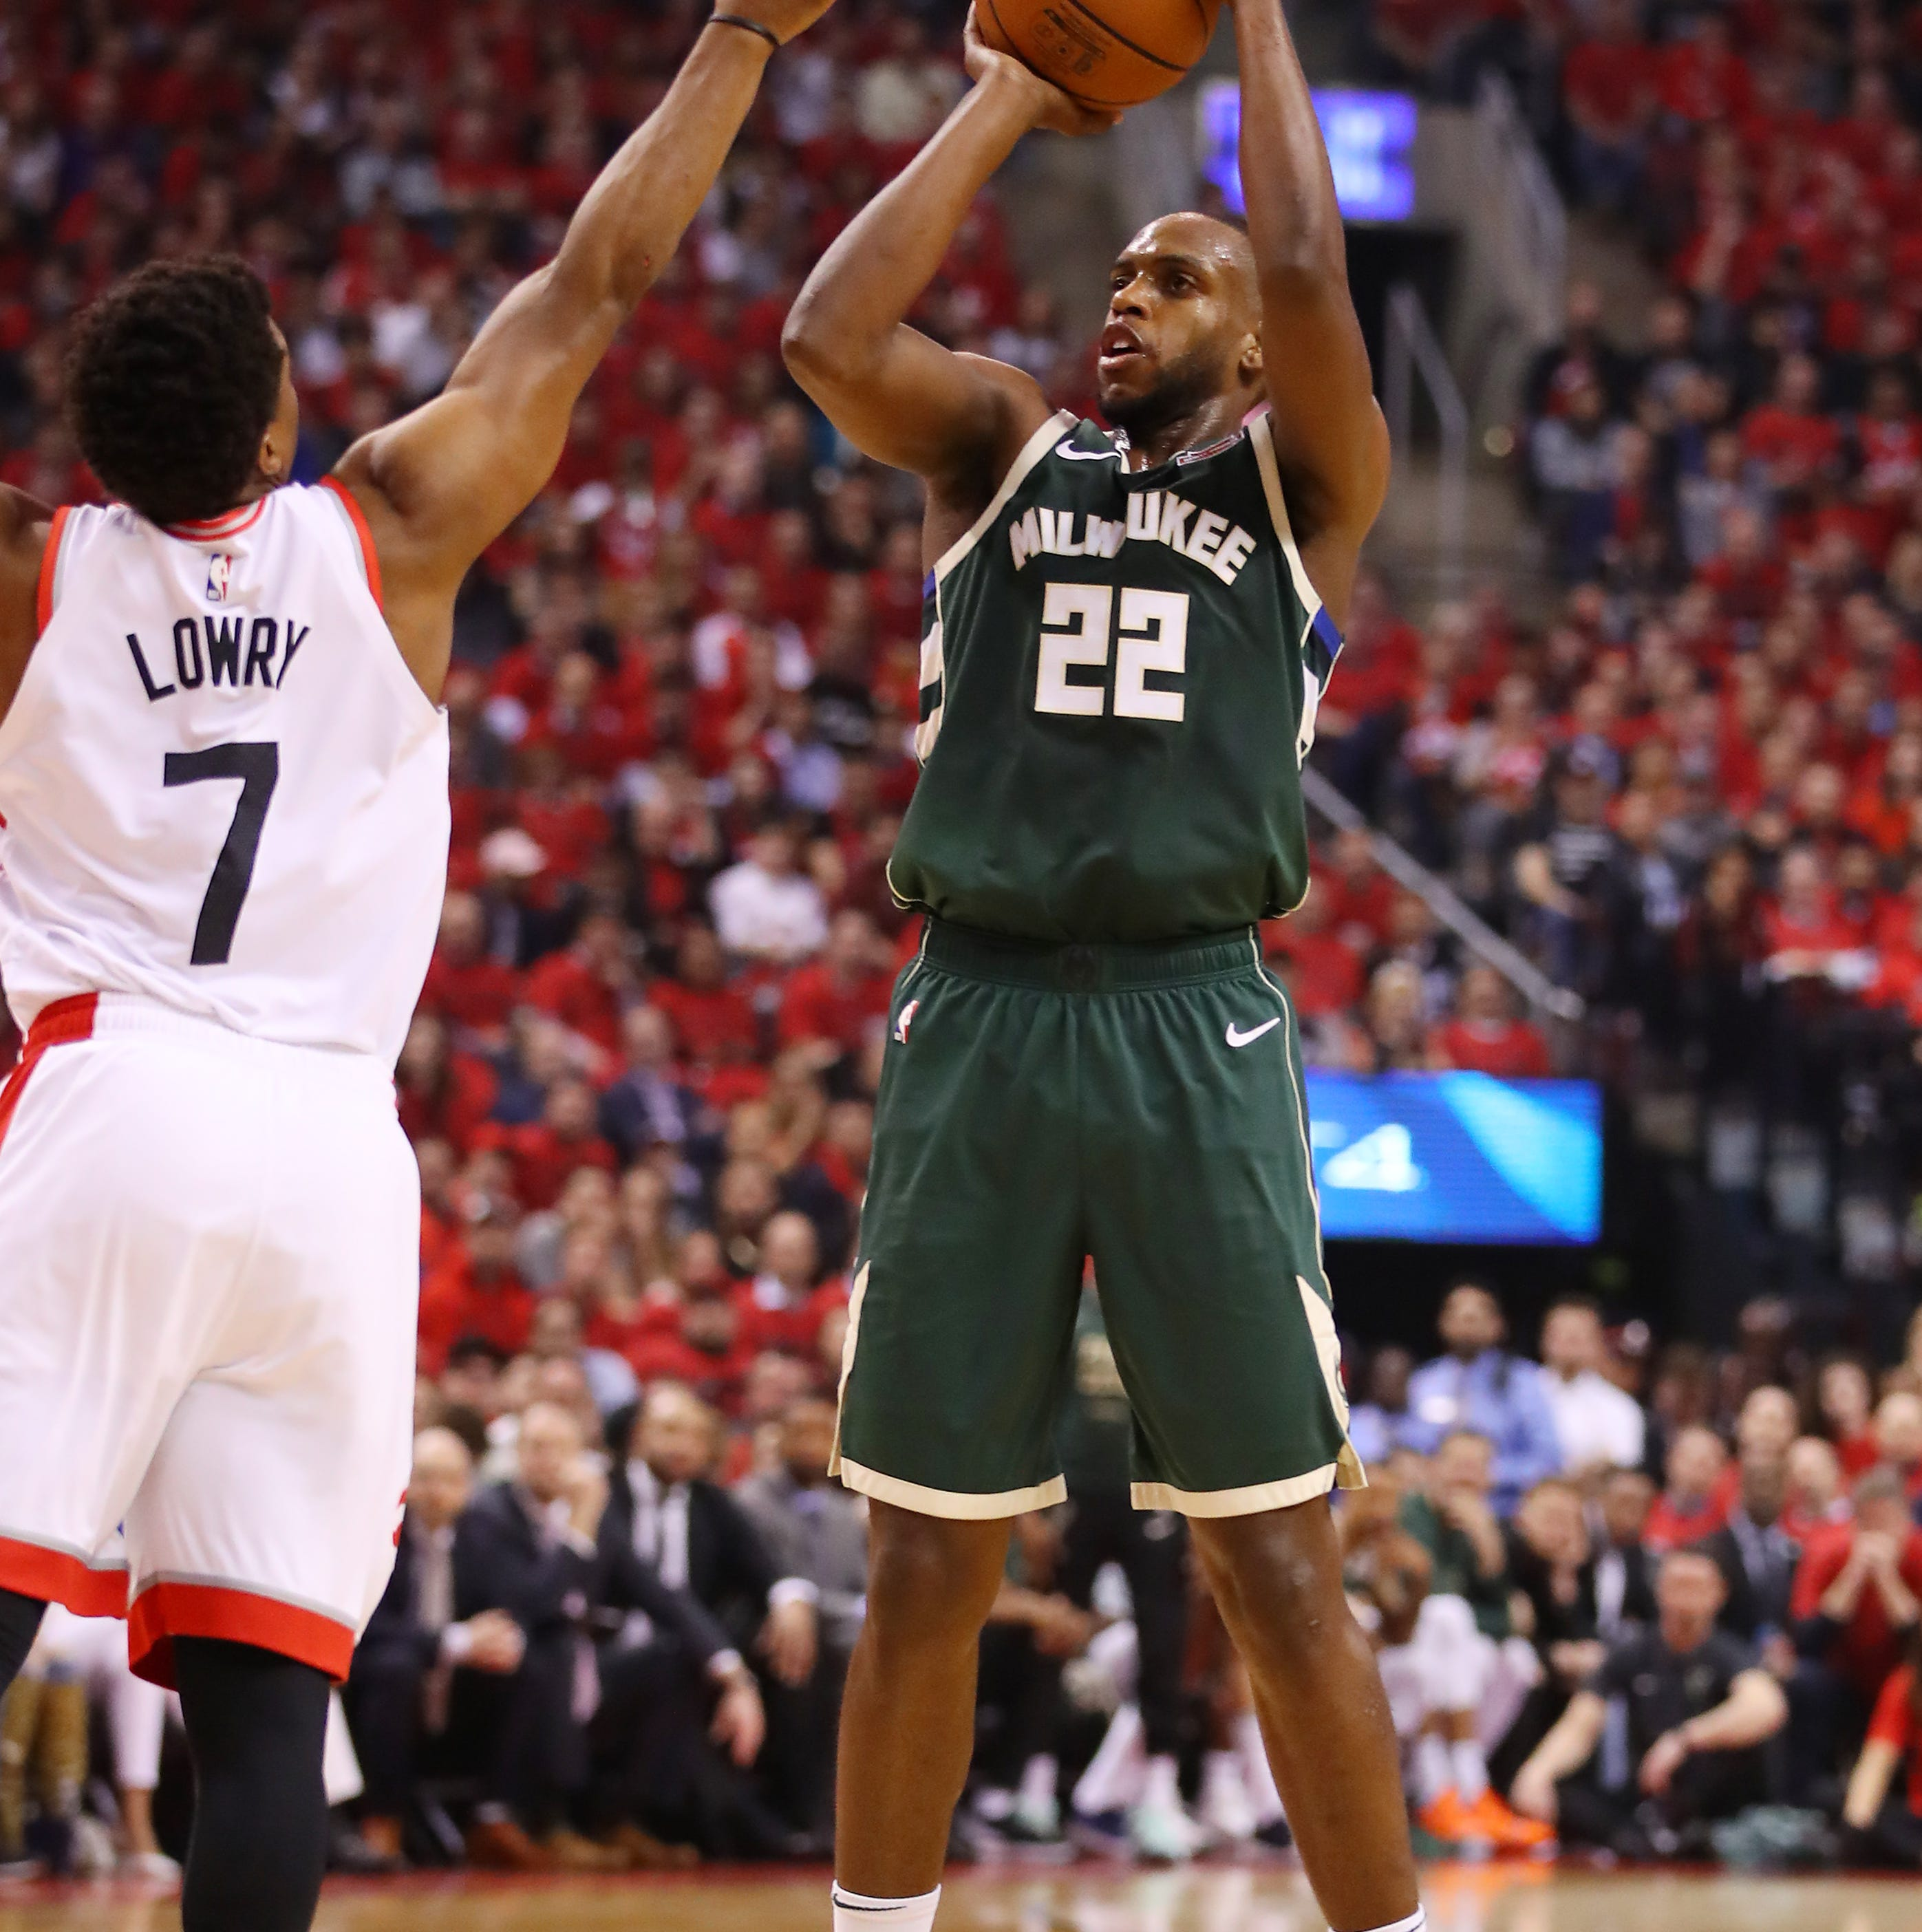 Bucks' three-point shooting woes put let-it-fly philosophy to the test